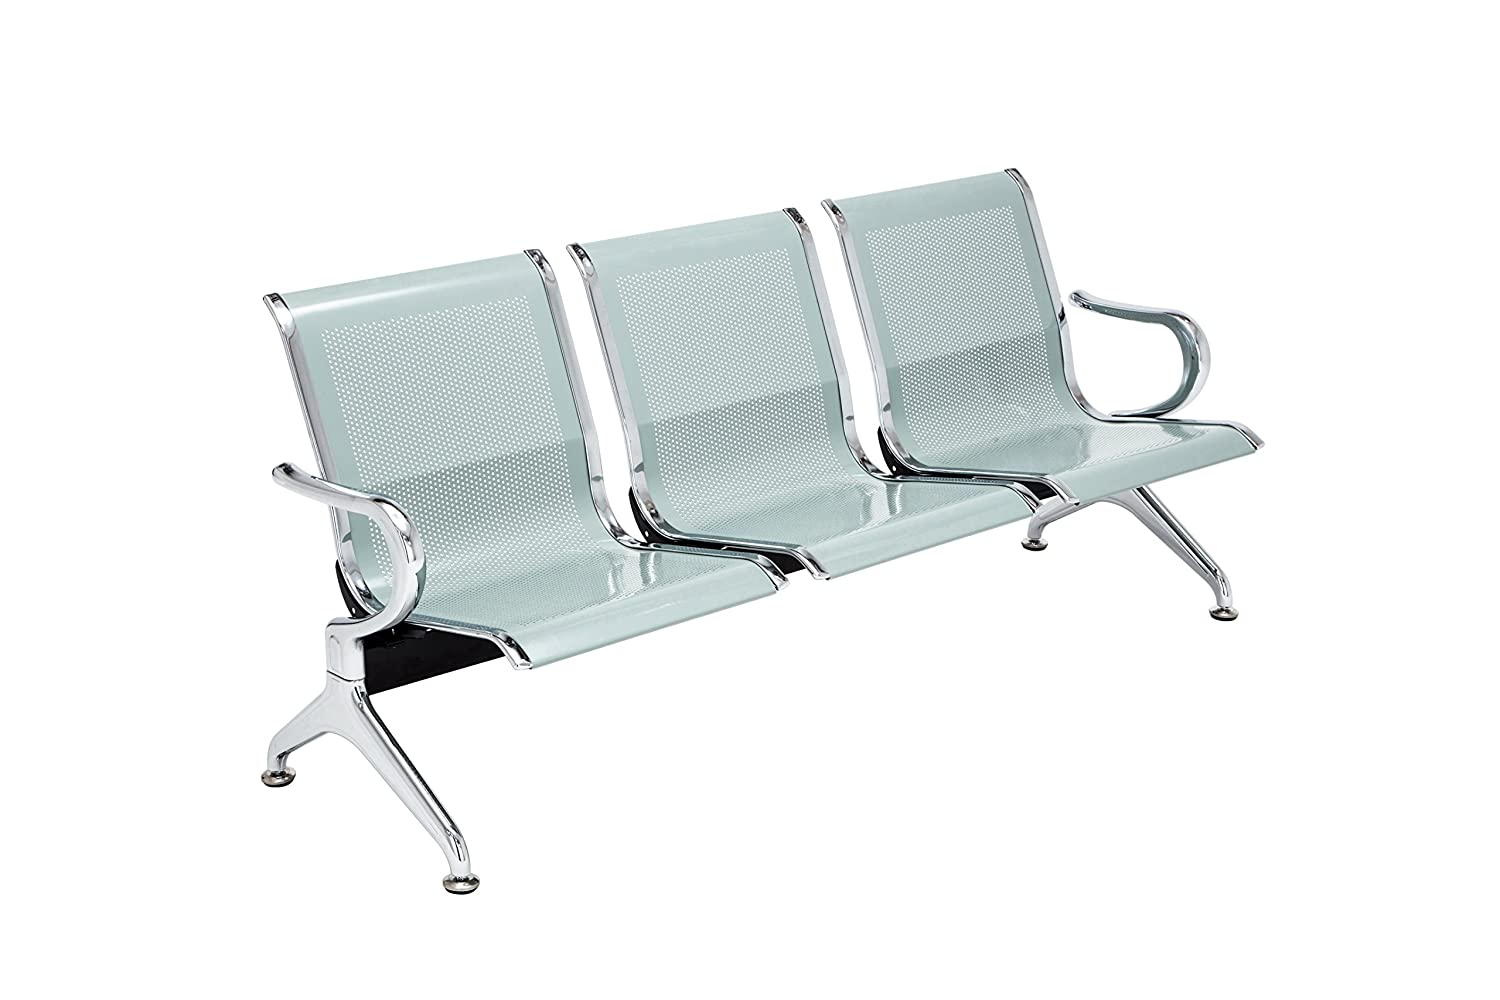 Amazing Walcut Airport Office Reception Waiting Chair Bench Guest Chair Room Garden Salon Barber Hospital Bench 3 Seats Silver Unemploymentrelief Wooden Chair Designs For Living Room Unemploymentrelieforg